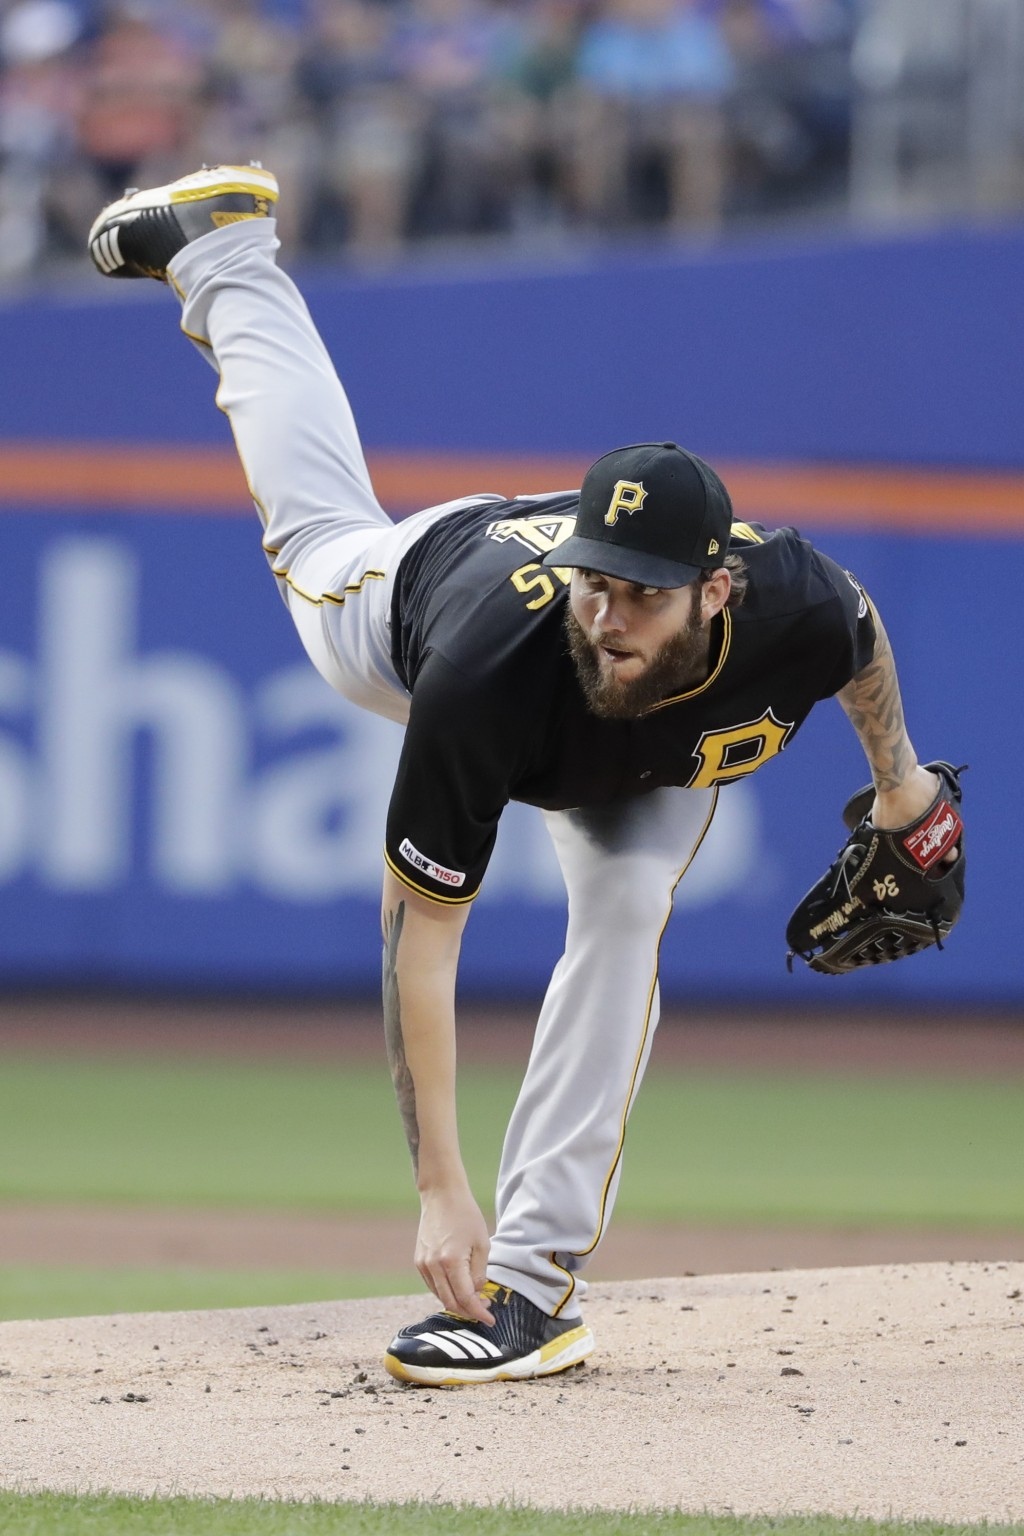 Pittsburgh Pirates' Trevor Williams delivers a pitch during the first inning of a baseball game against the New York Mets, Saturday, July 27, 2019, in